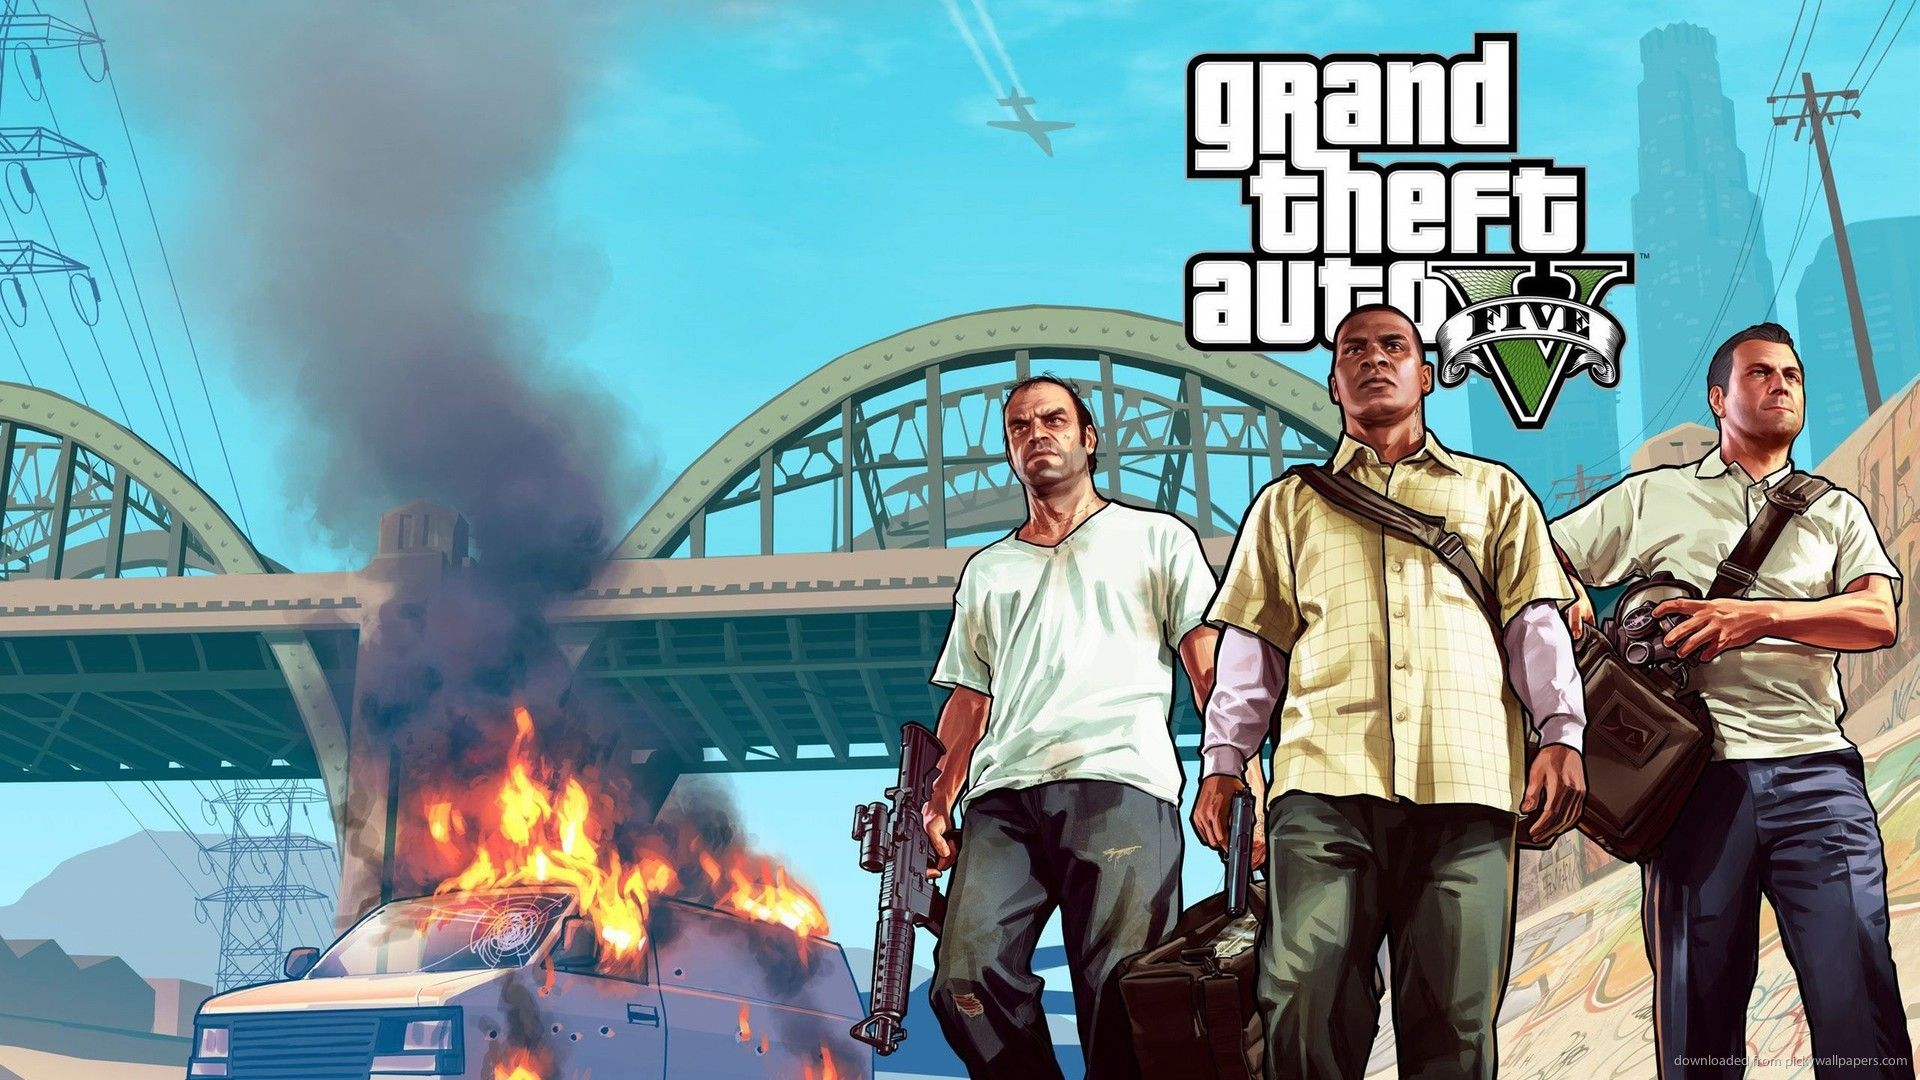 Grand Theft Auto V Activation Key + Cracks PC Game Free Download